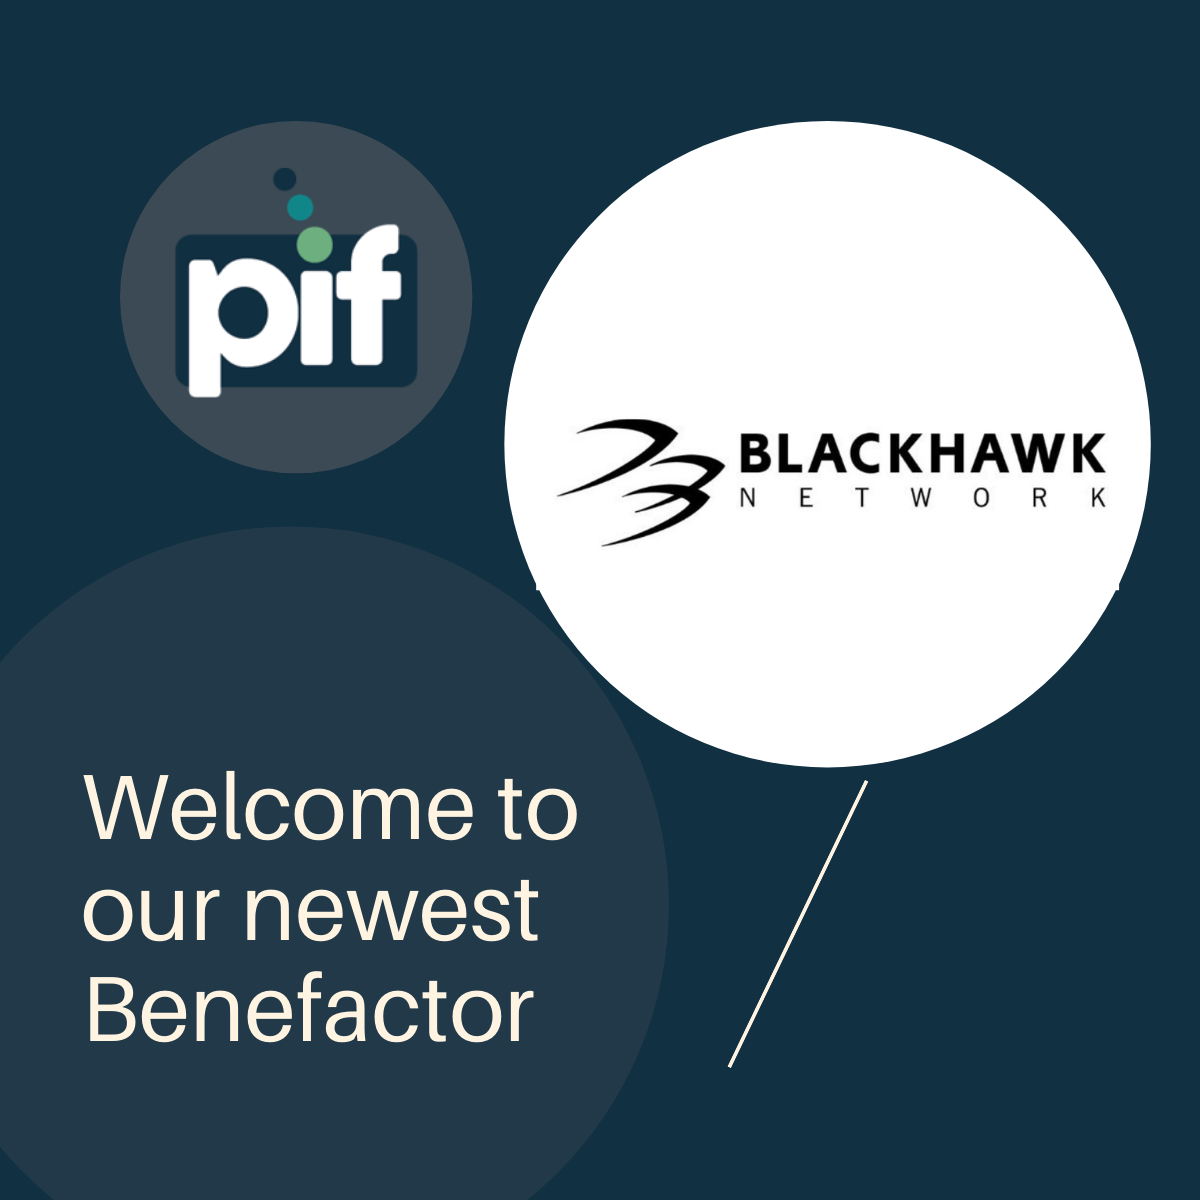 Branded payments provider Blackhawk Network becomes a PIF Benefactor